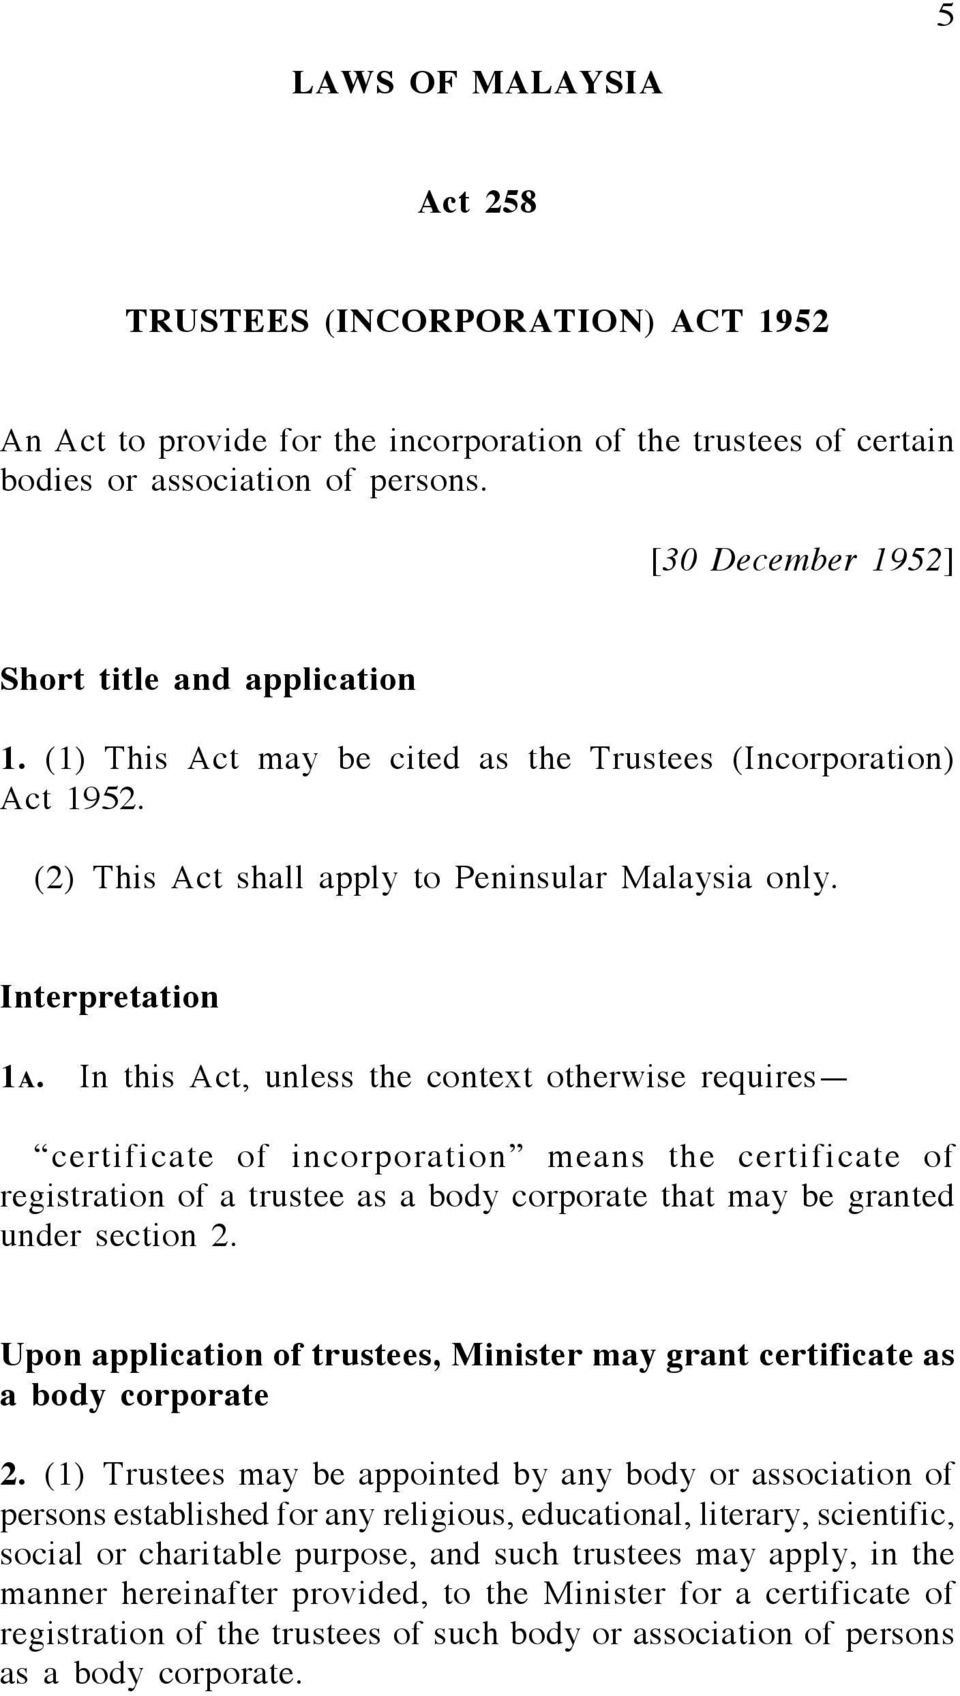 In this Act, unless the context otherwise requires certificate of incorporation means the certificate of registration of a trustee as a body corporate that may be granted under section 2.